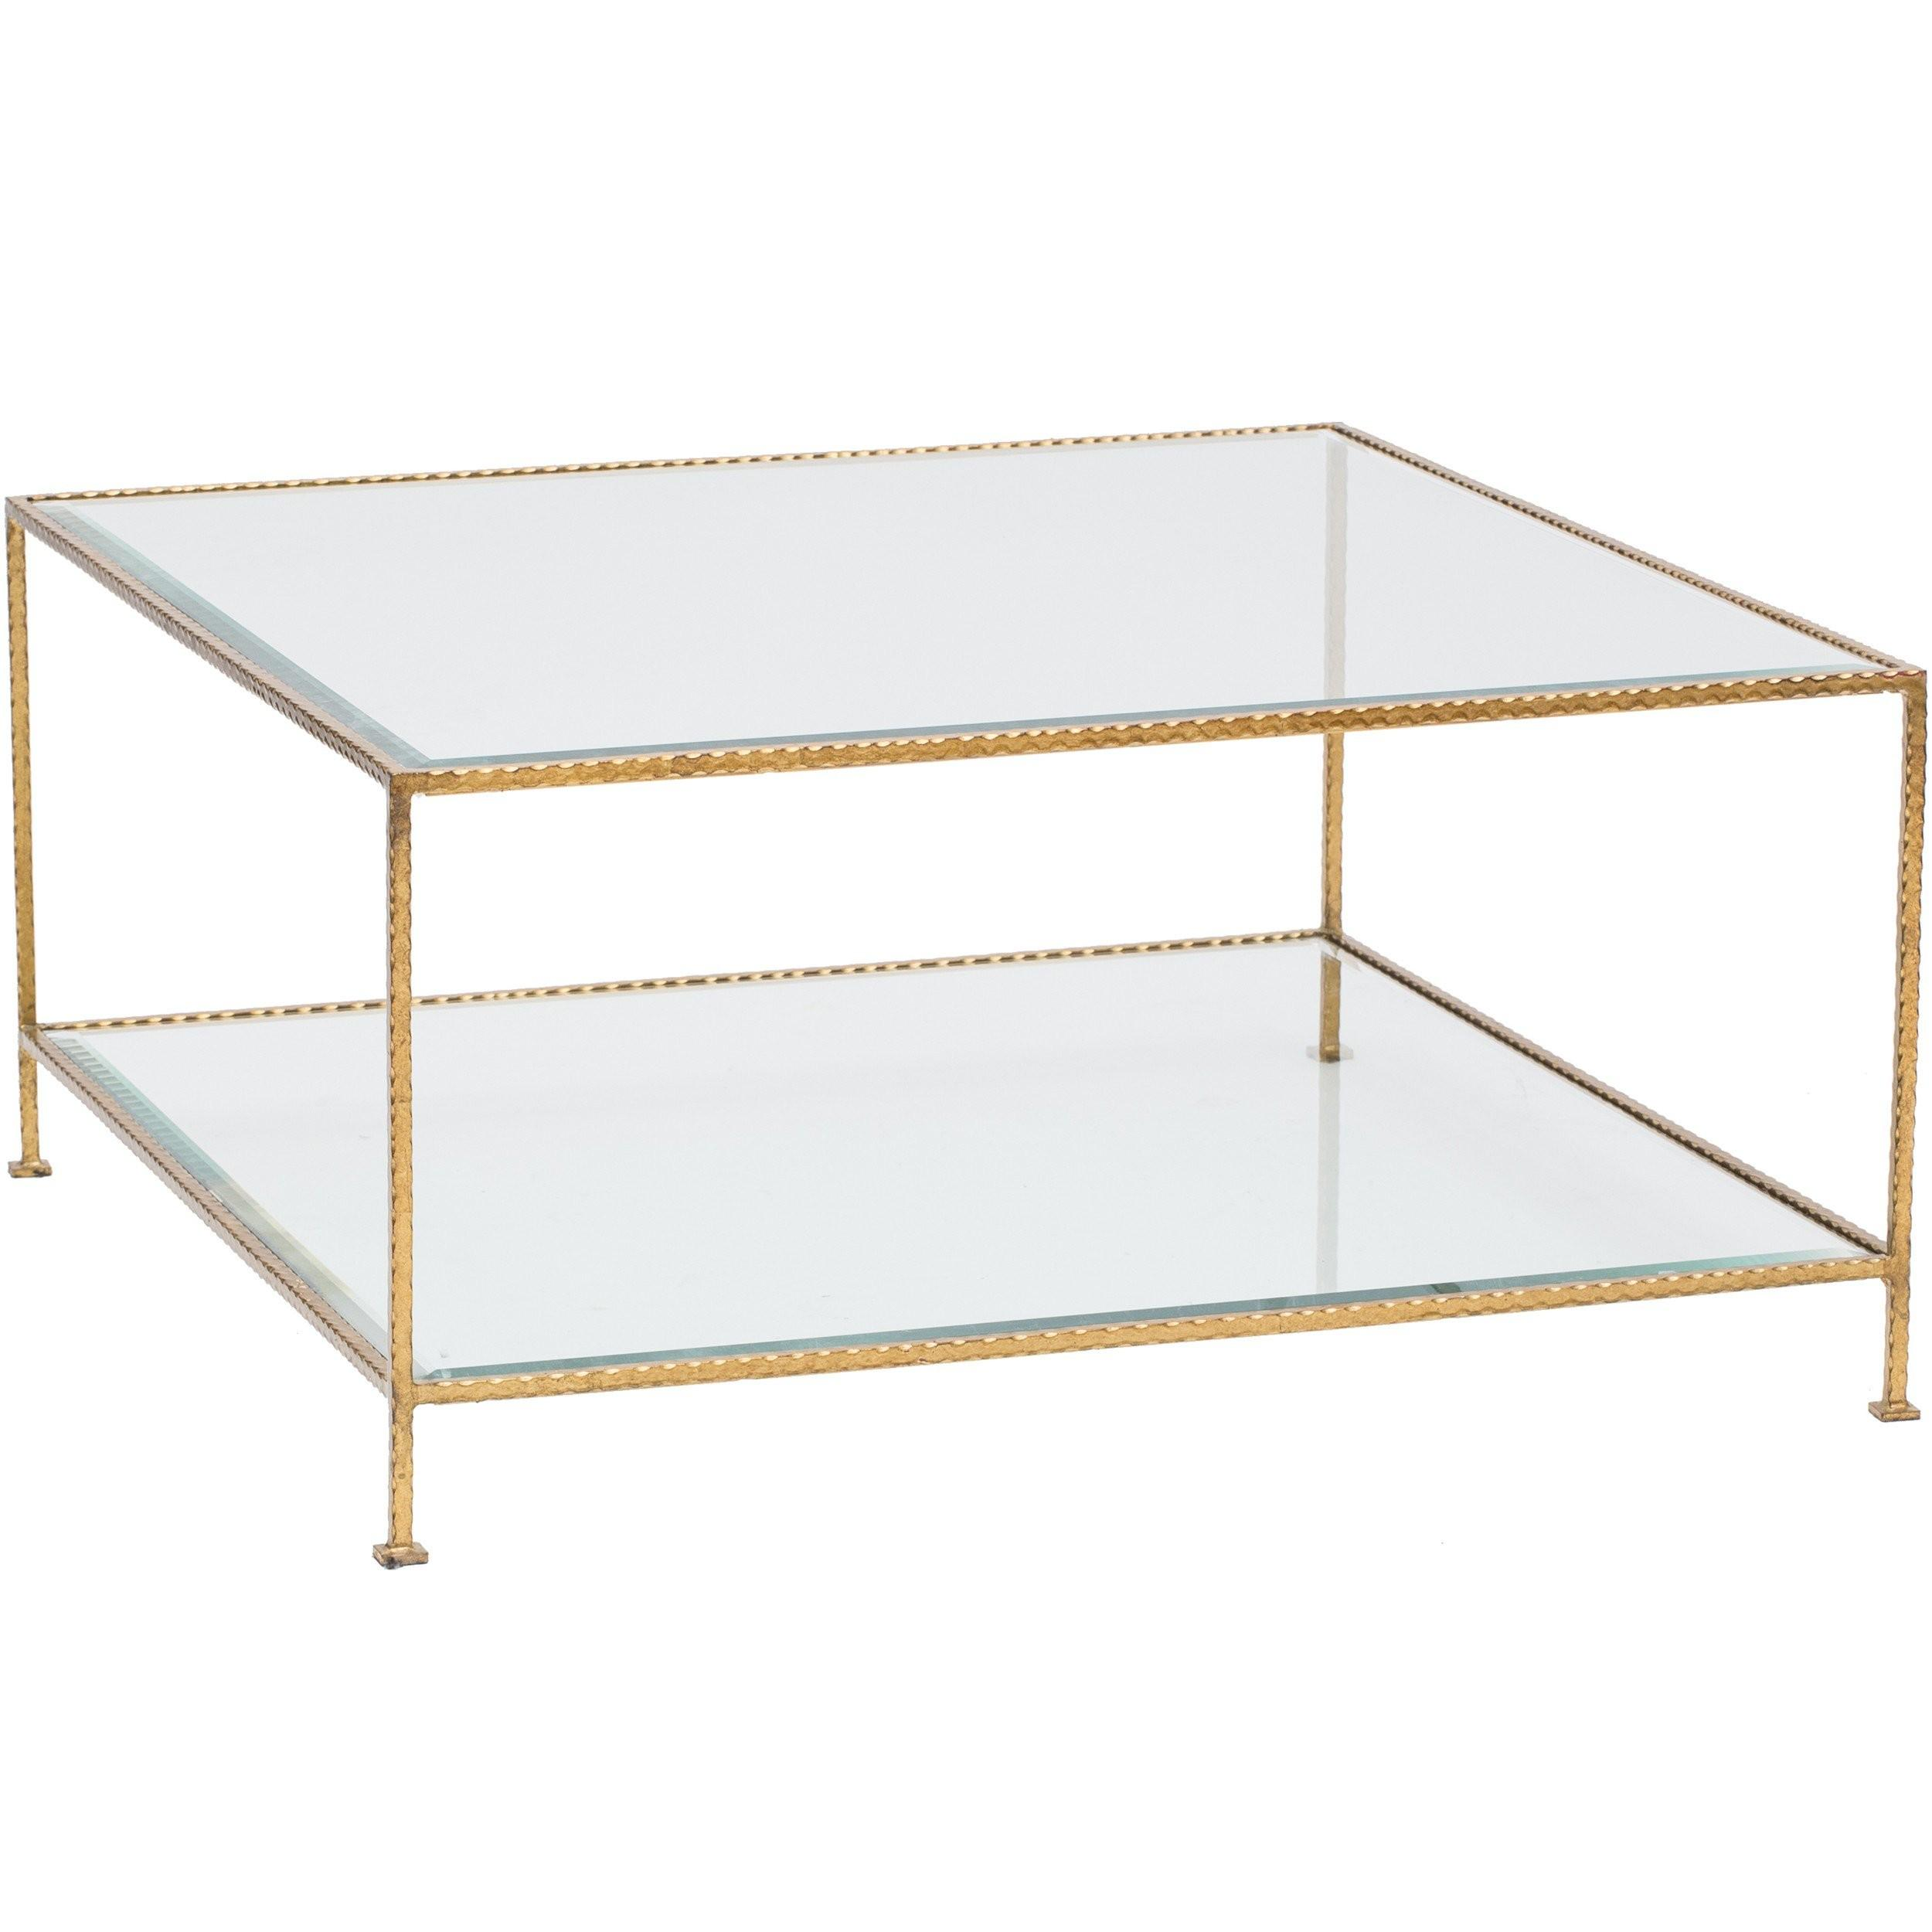 Quadro Tier Square Coffee Table Gold Furniture